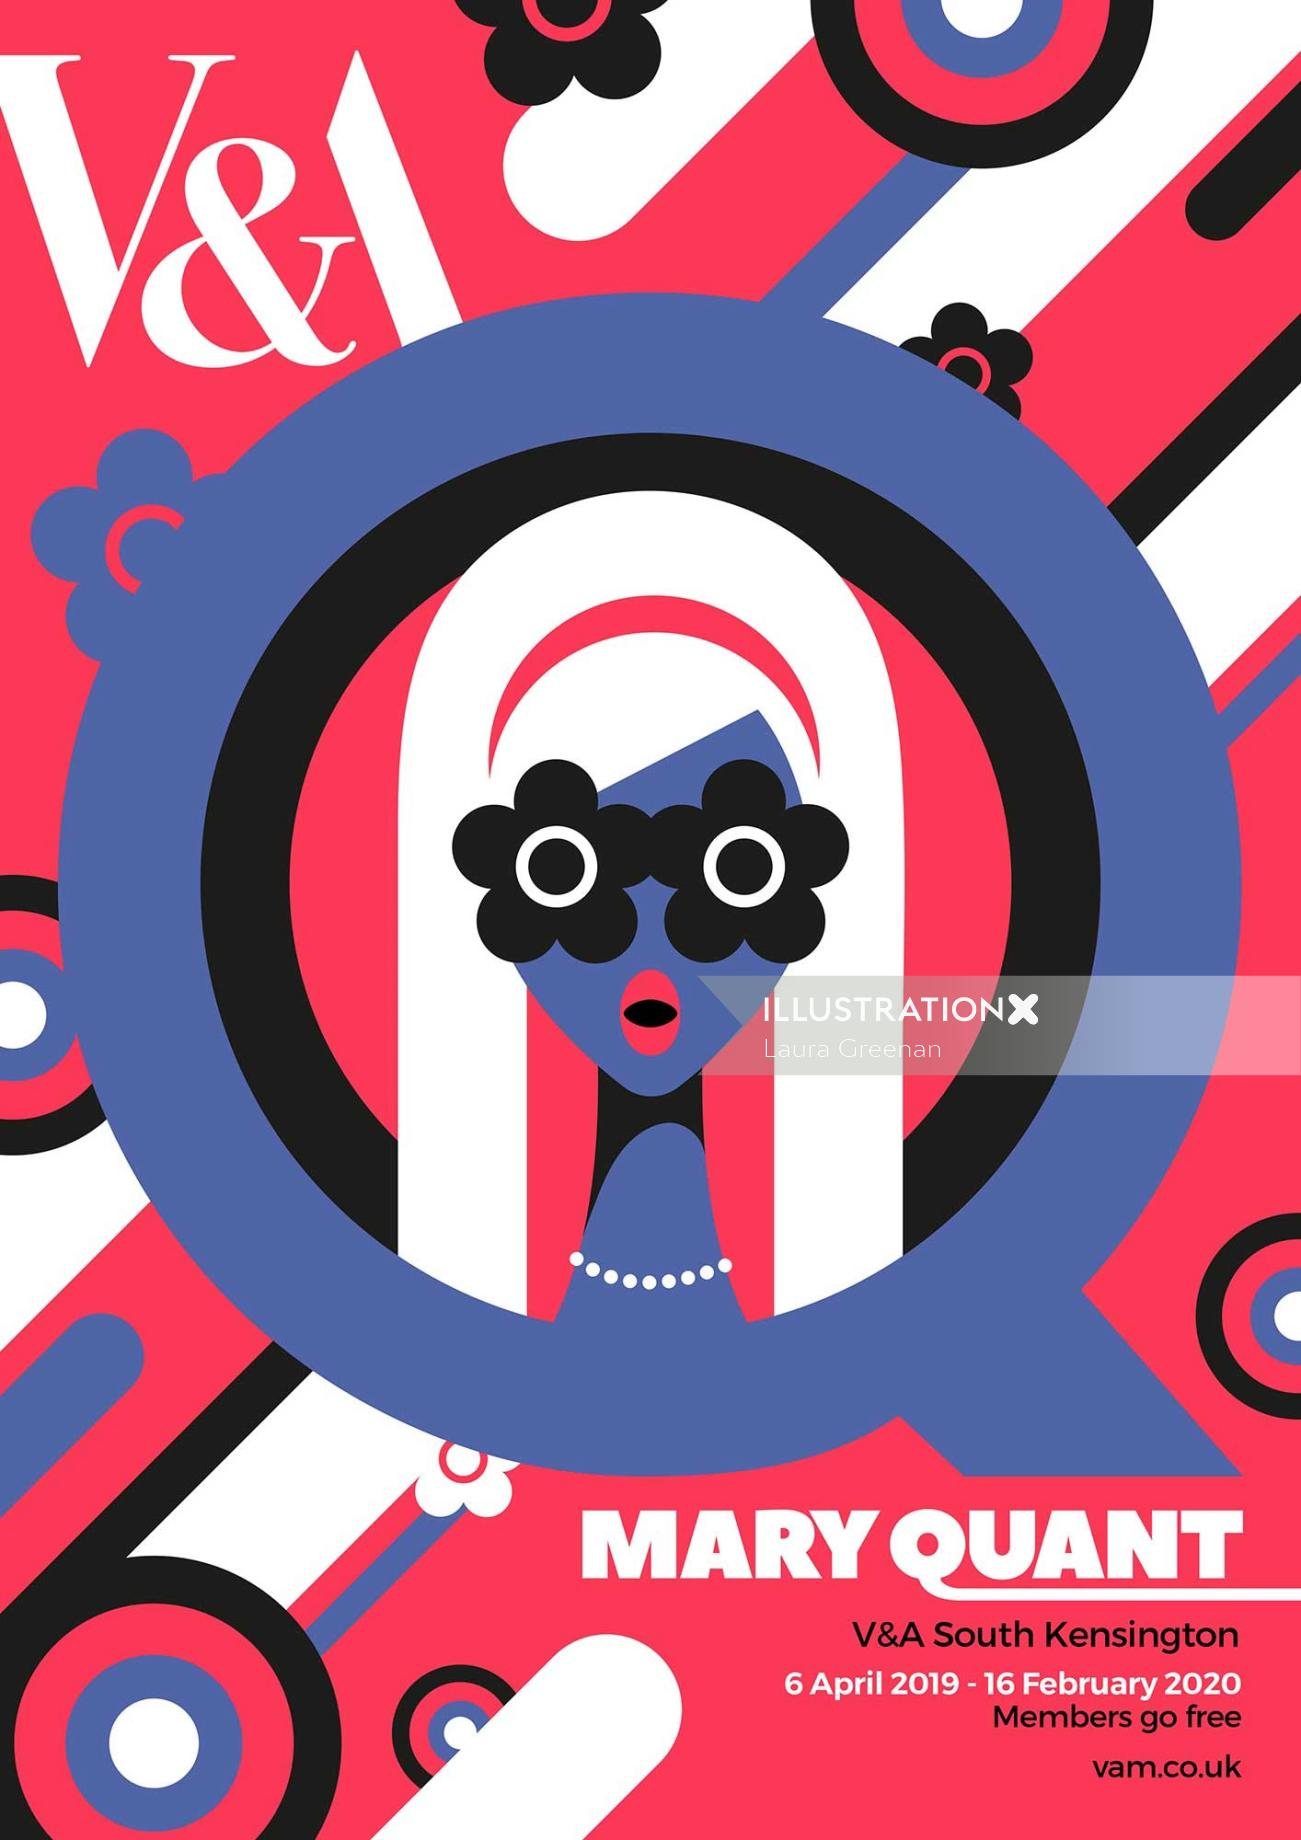 Poster designs for an exhibition from 60's fashion designer Mary Quant.